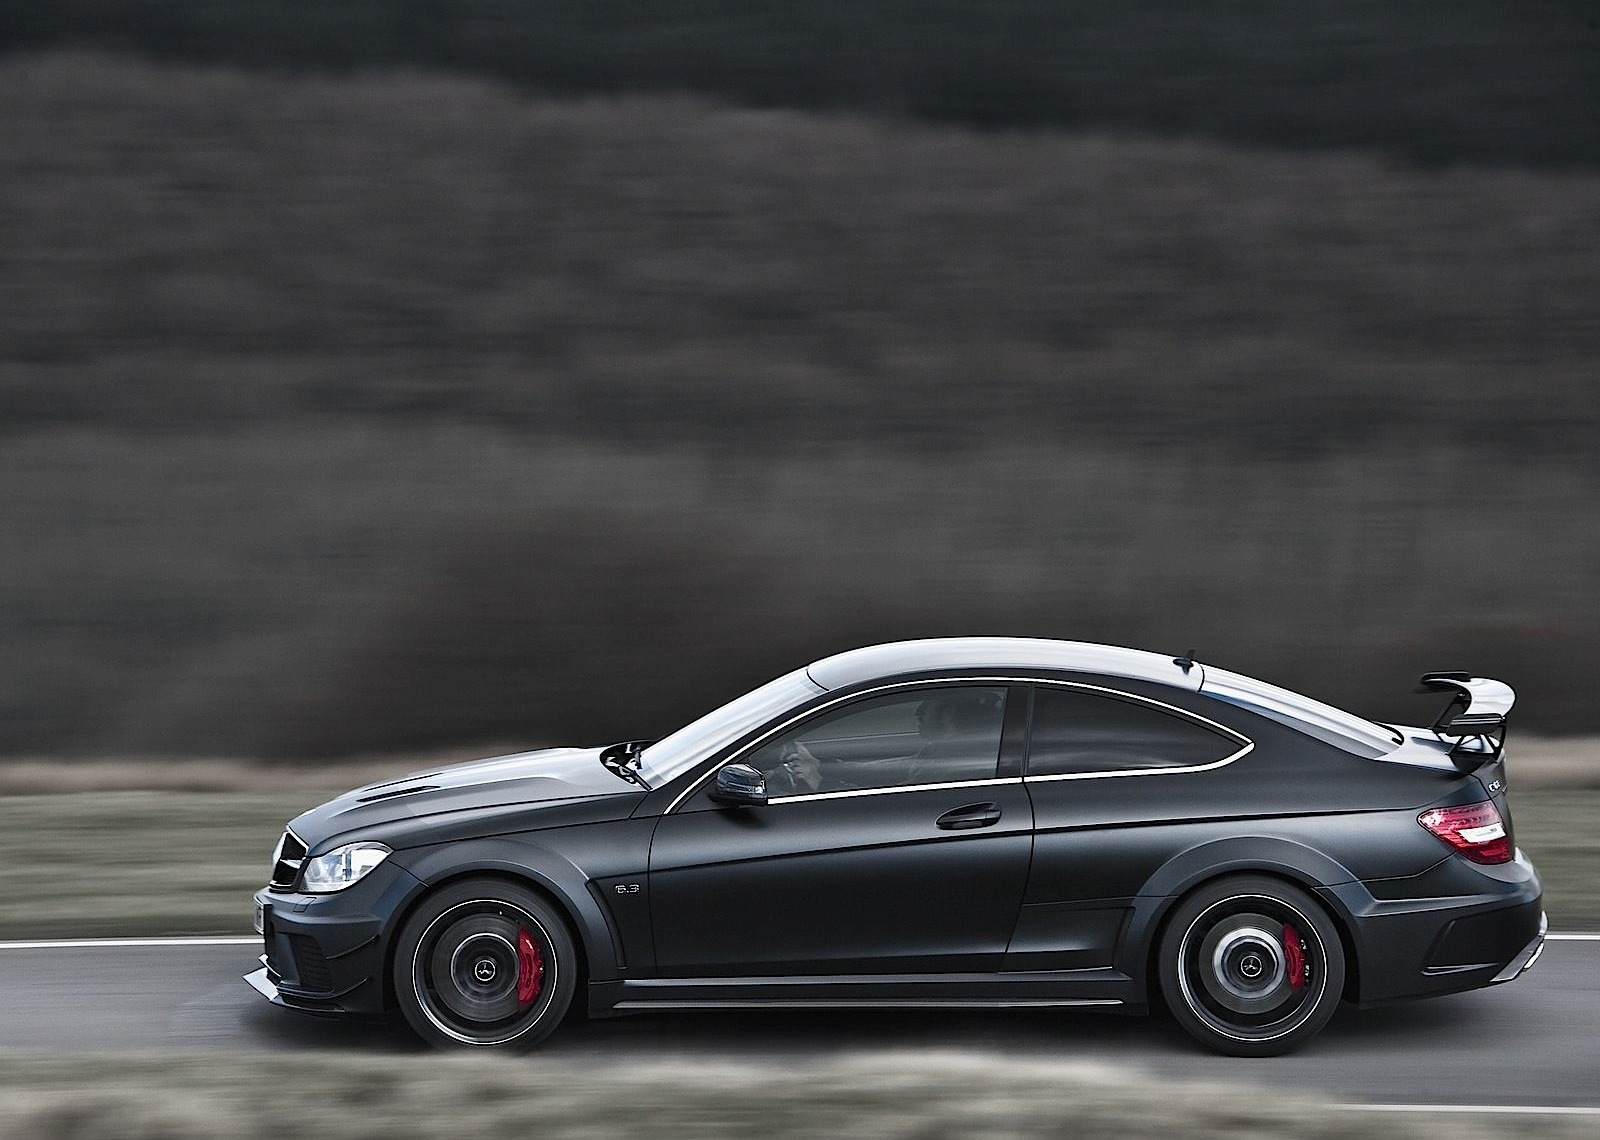 Mercedes Benz C 63 Amg Coupe Black Series 2011 2012